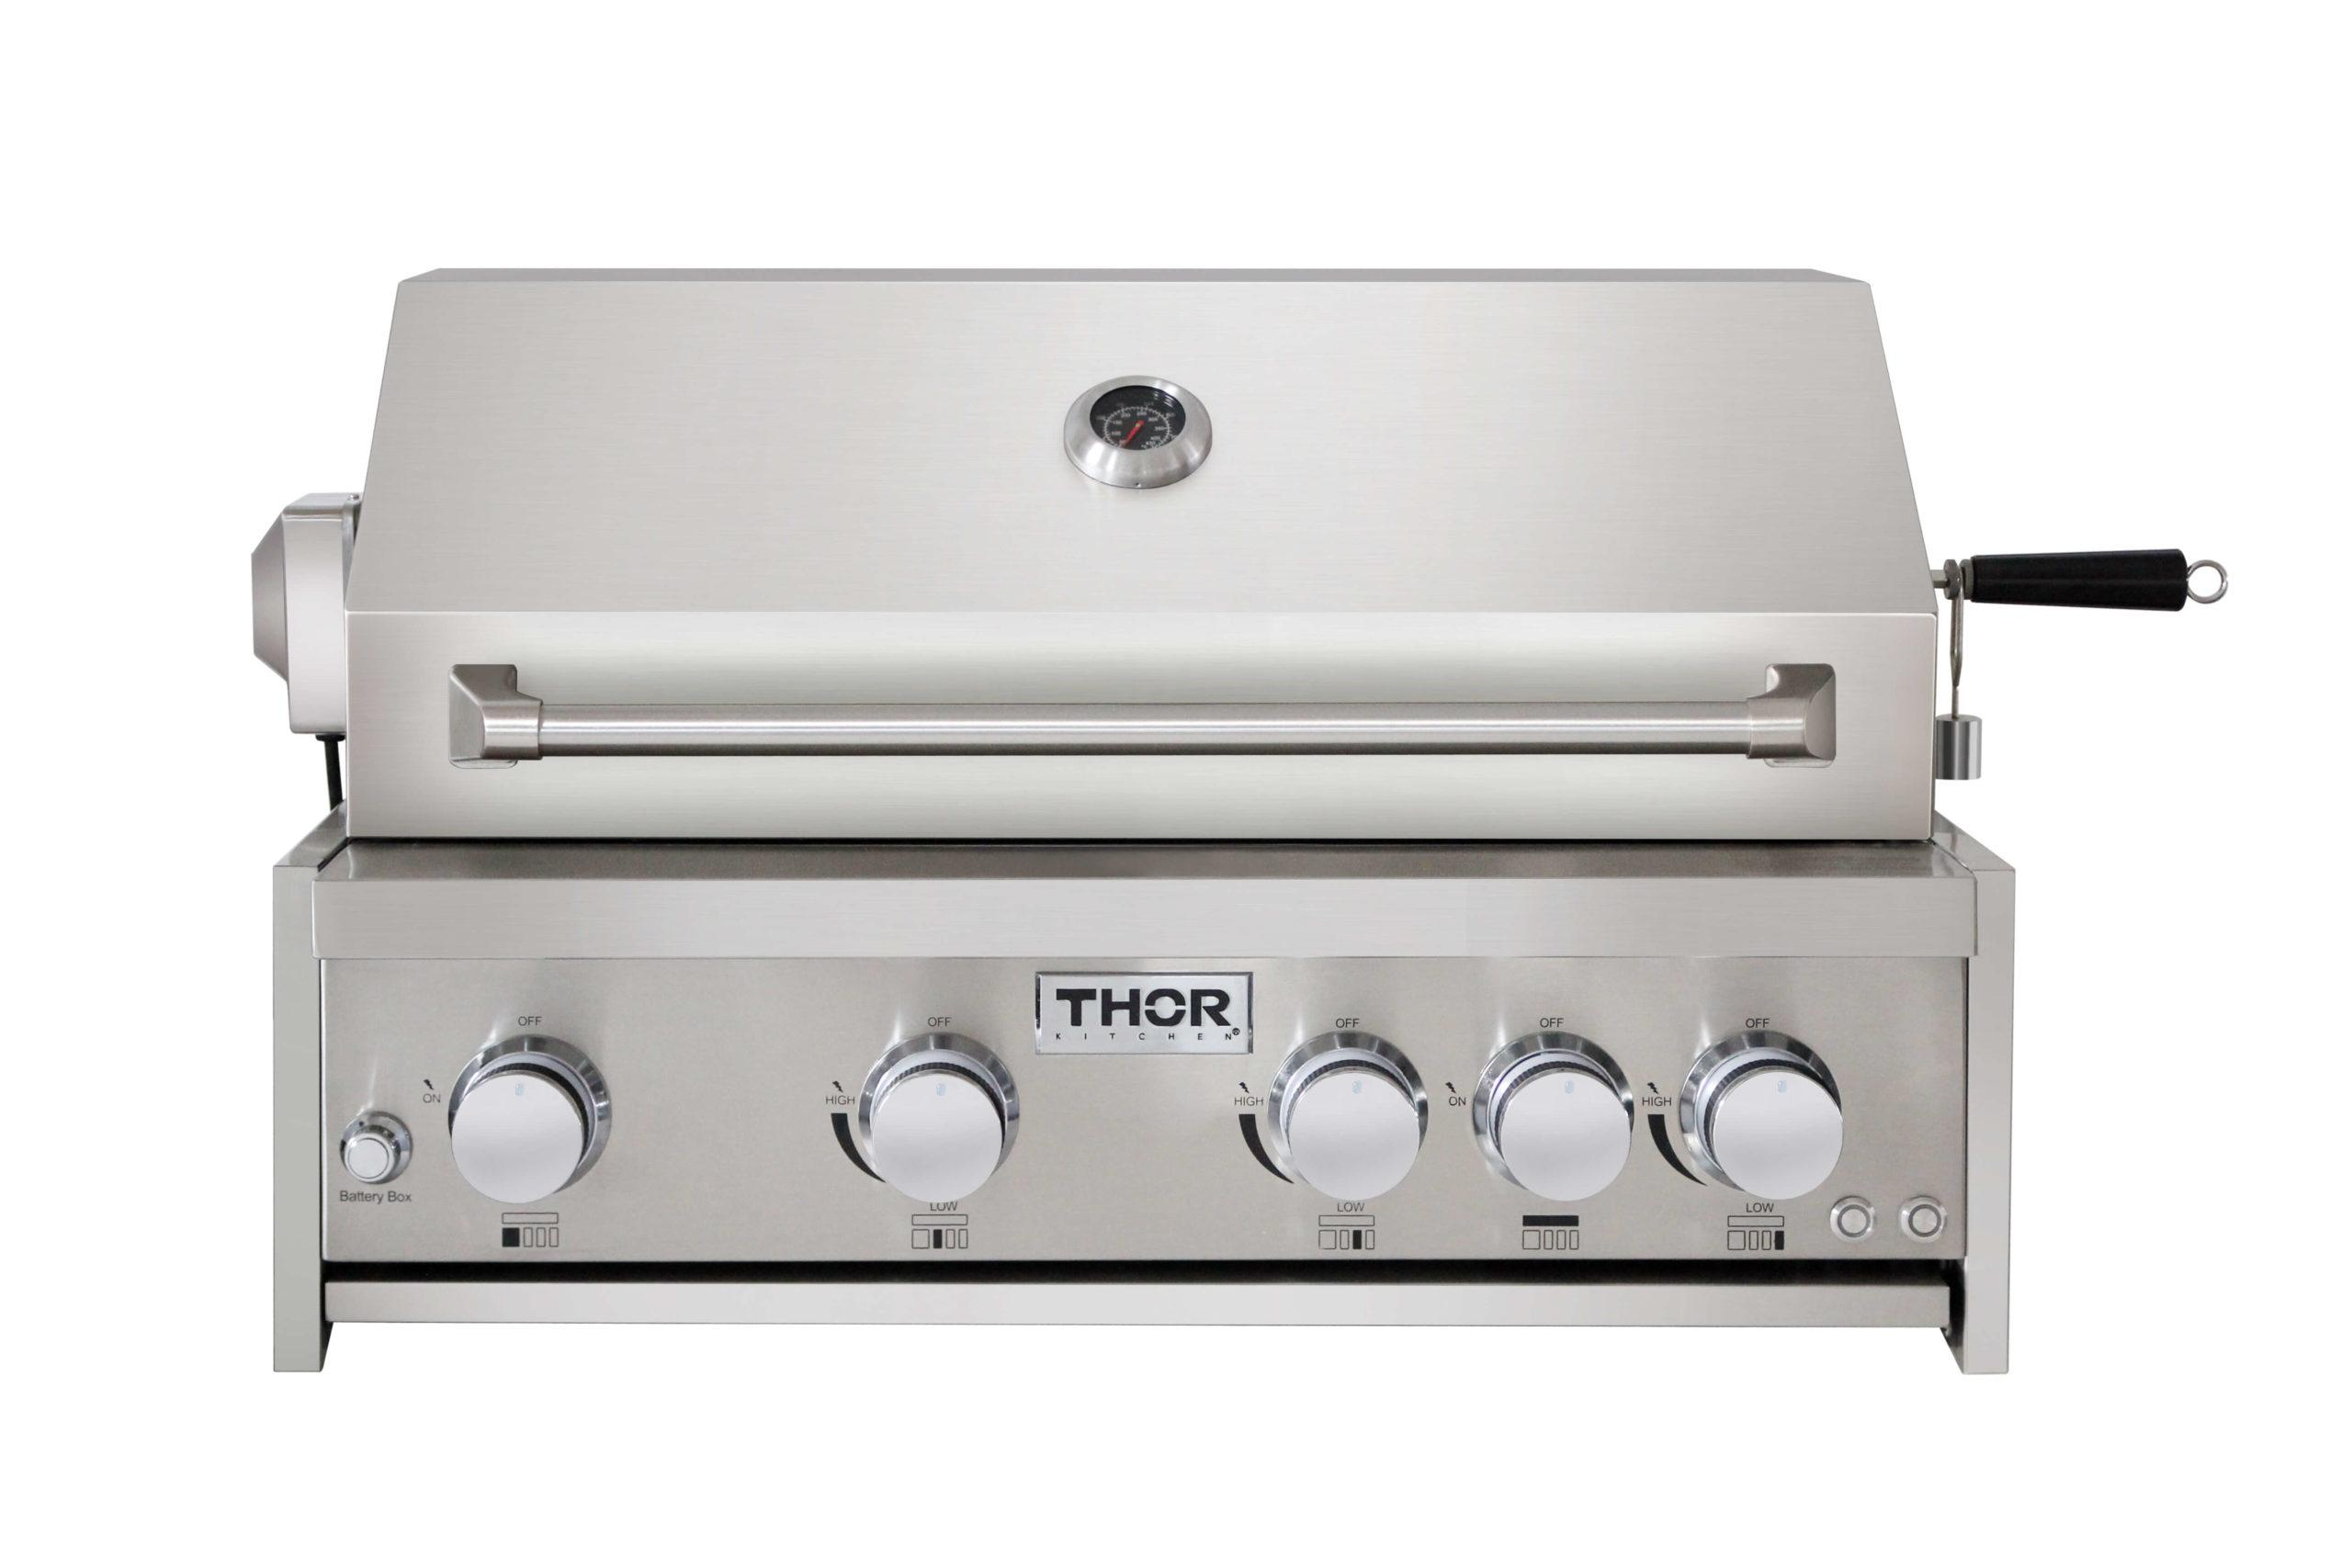 Thor Kitchen32 Inch 4-Burner Gas Bbq Grill With Rotisserie In Stainless Steel